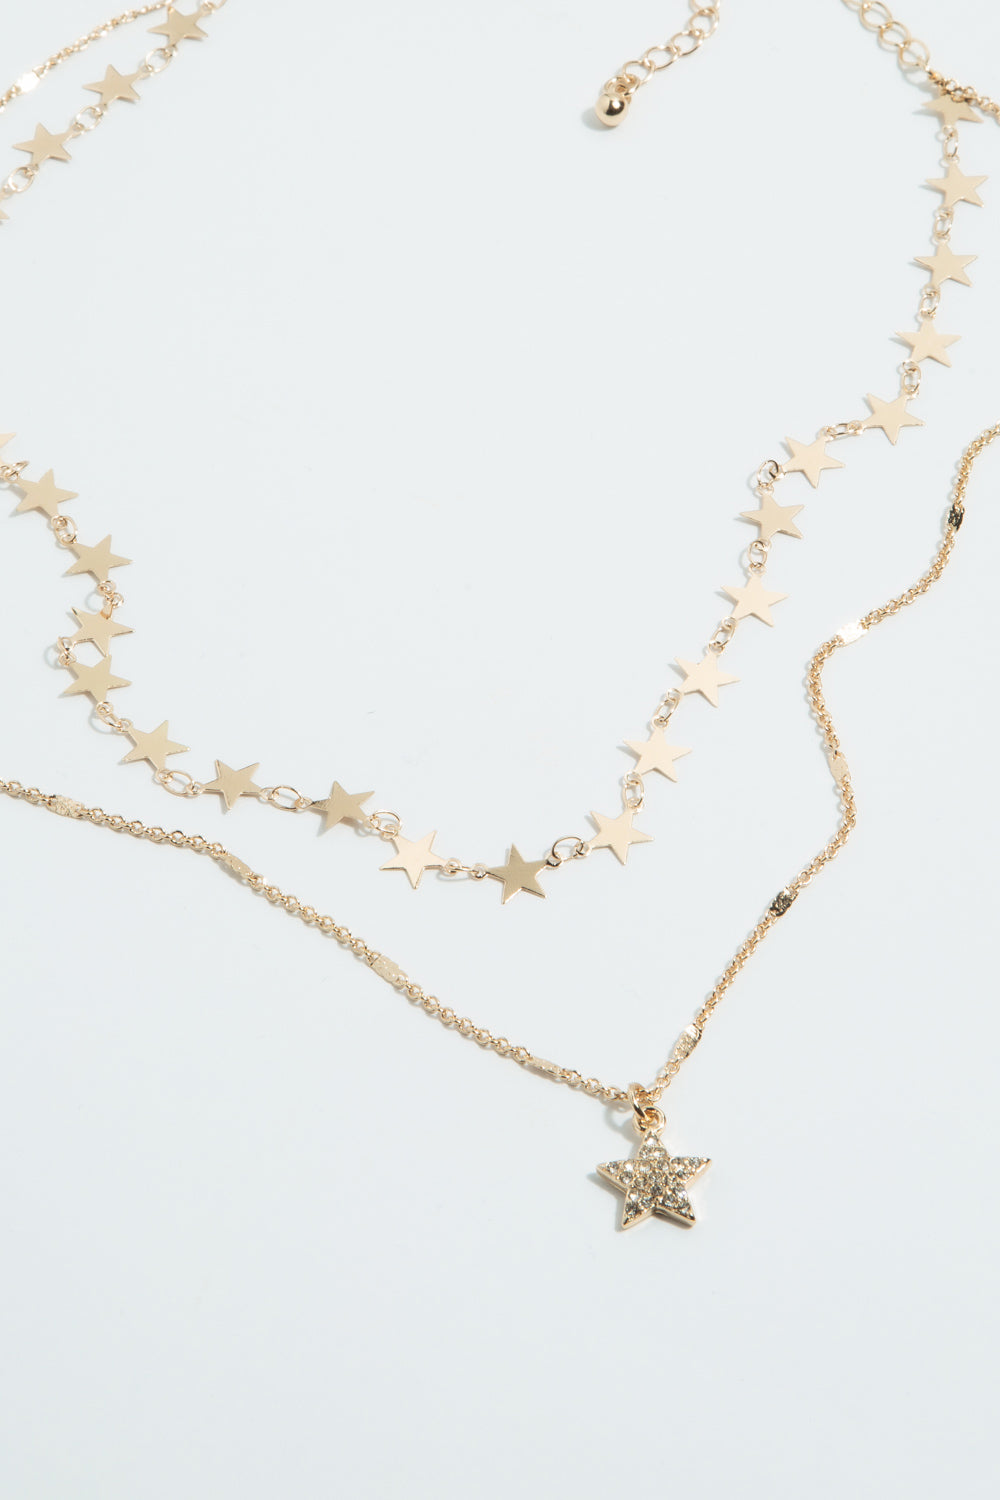 Type 1 Time 2 Twinkle Necklace